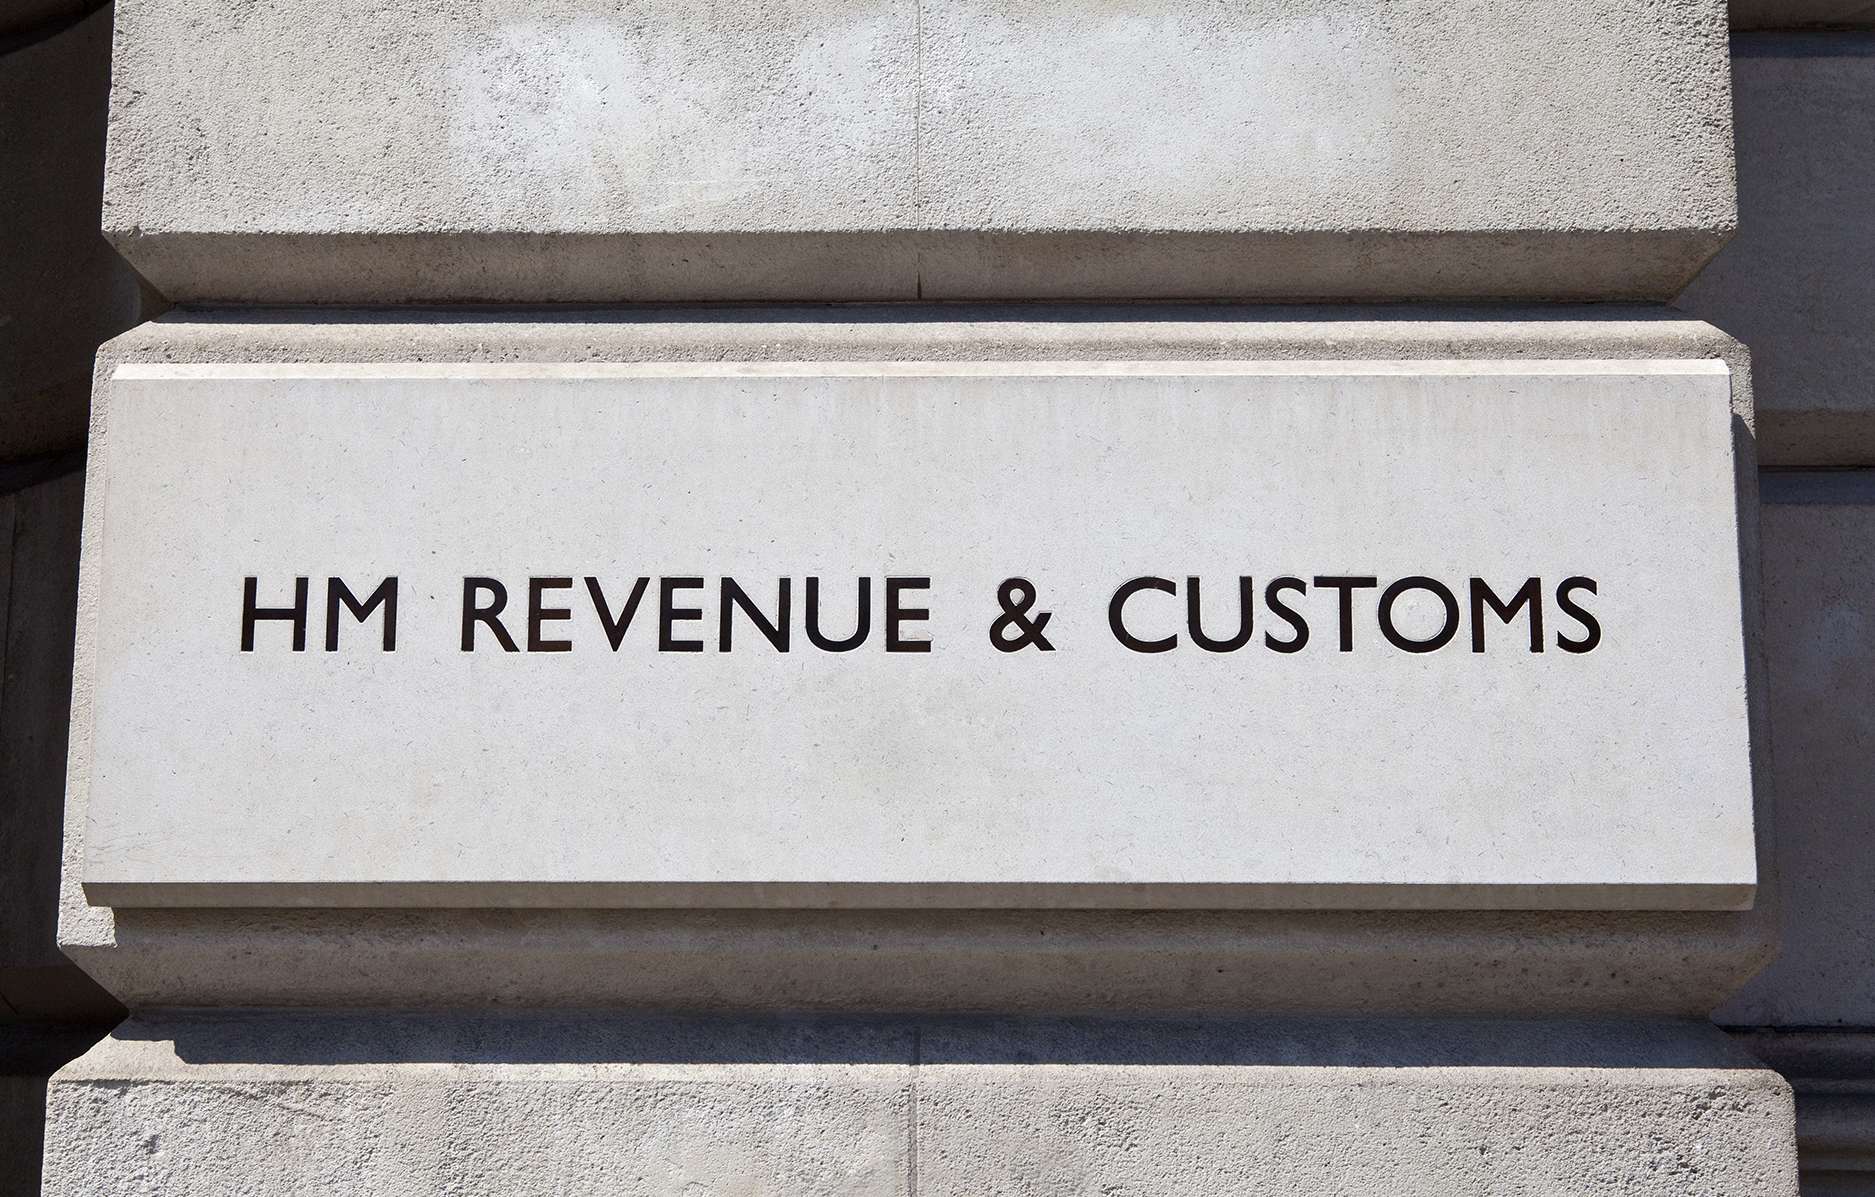 Image of HM Revenue and Customs building